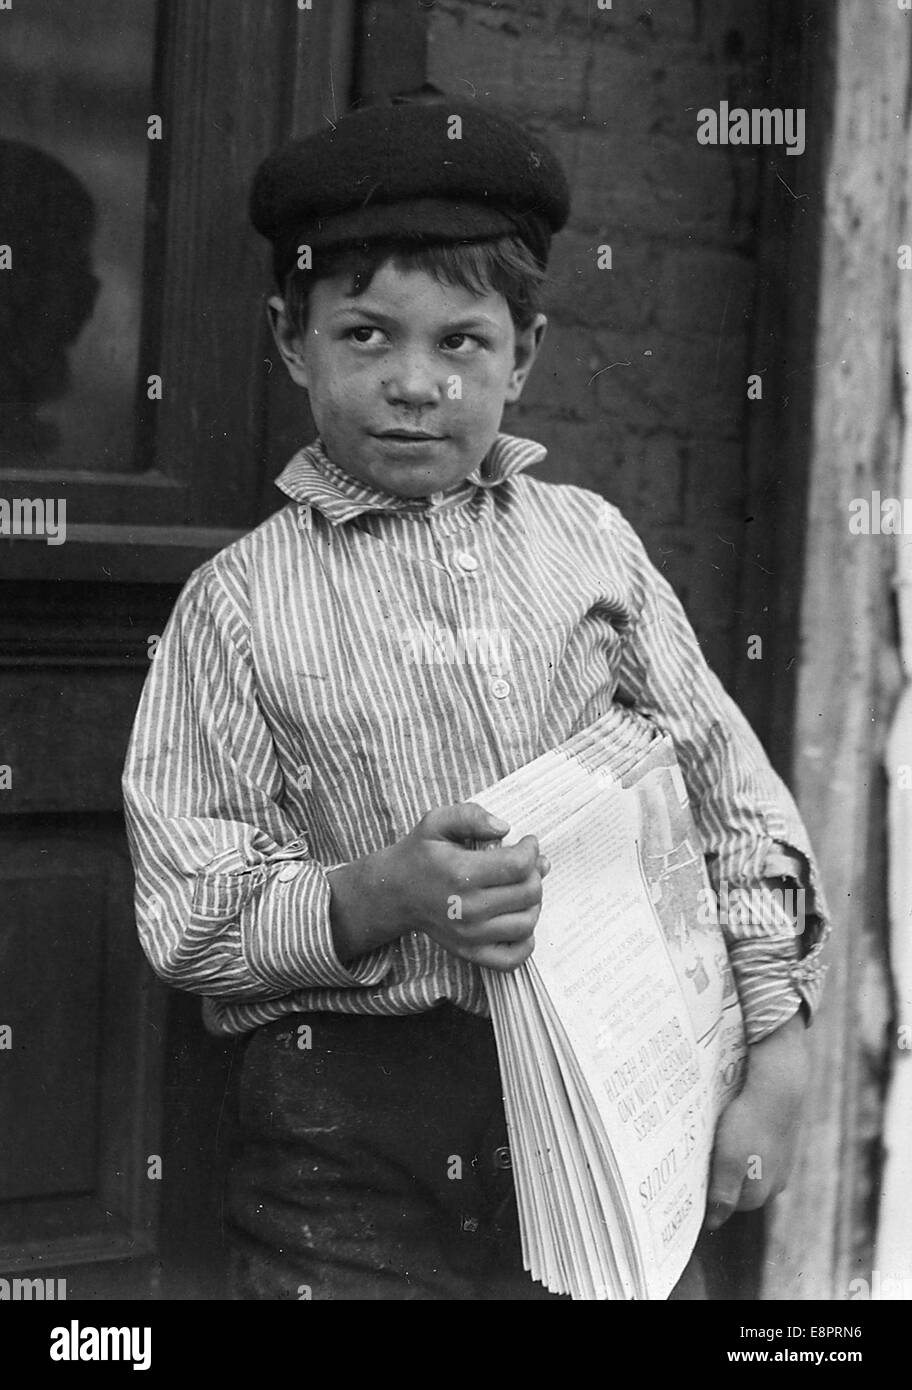 Paper boy Joe Smith 8 years old St Louis Mo May 1910 Stock